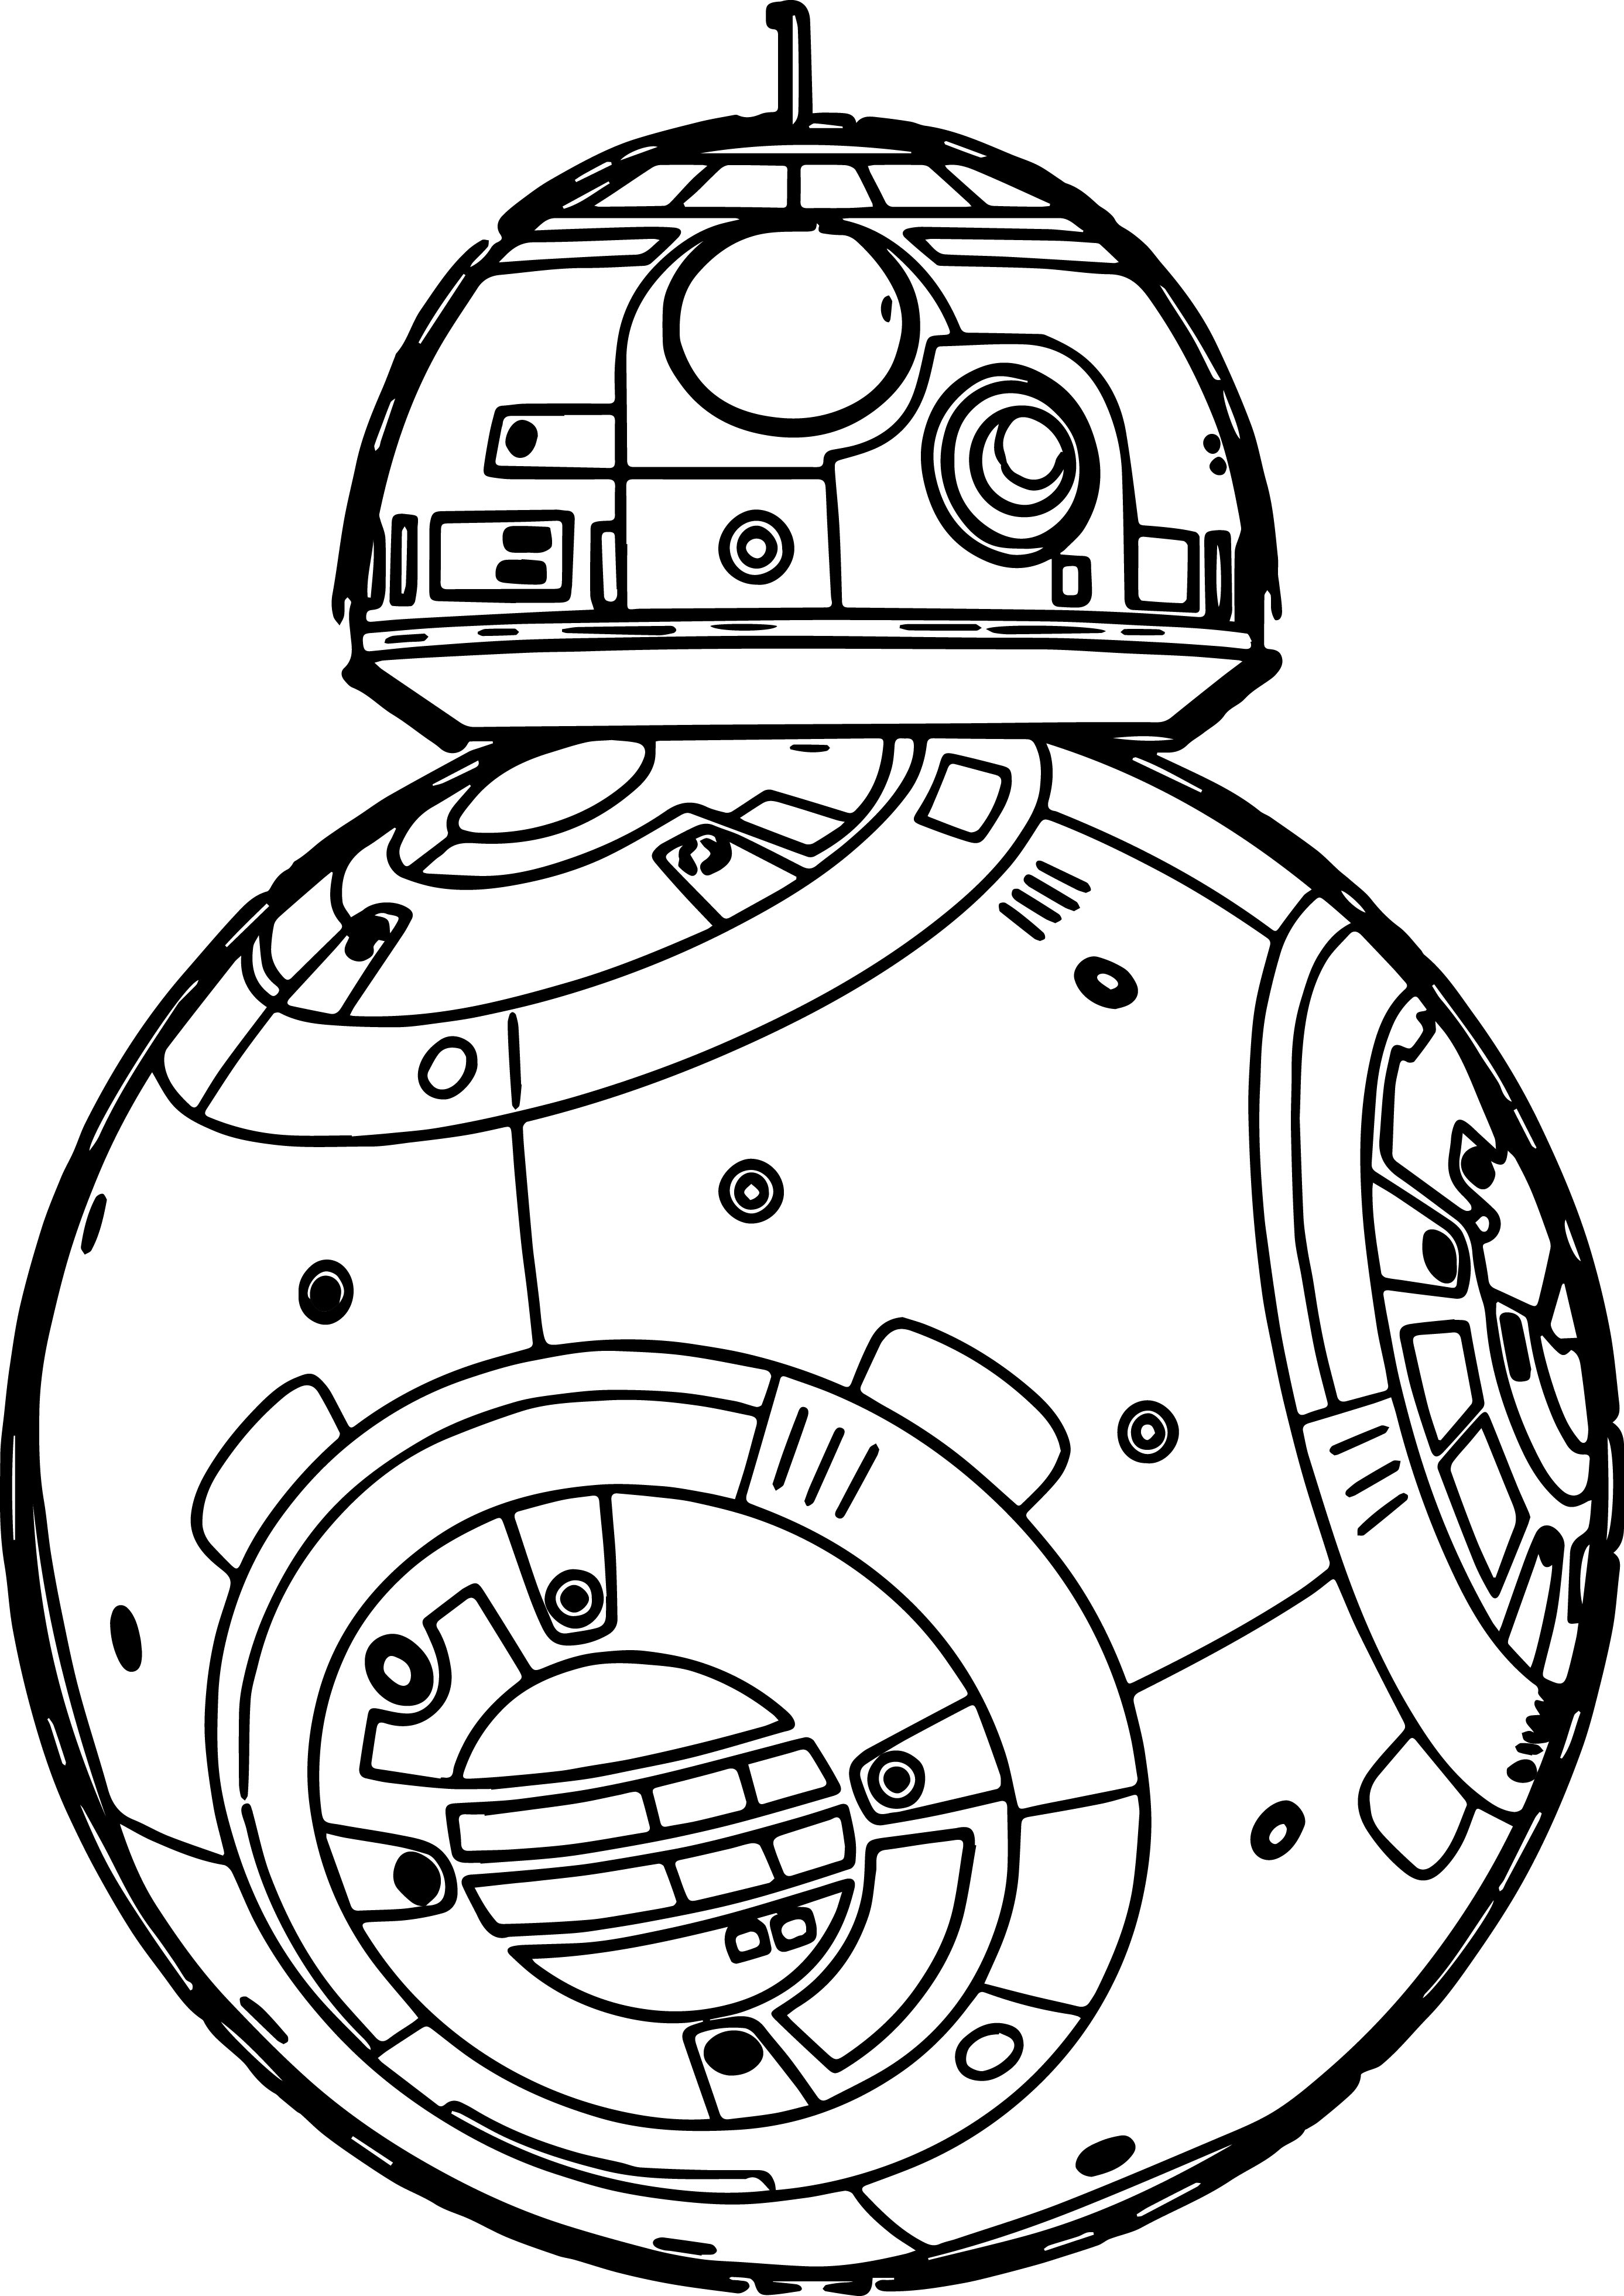 star wars coloring images star wars coloring pages 2018 dr odd coloring images star wars